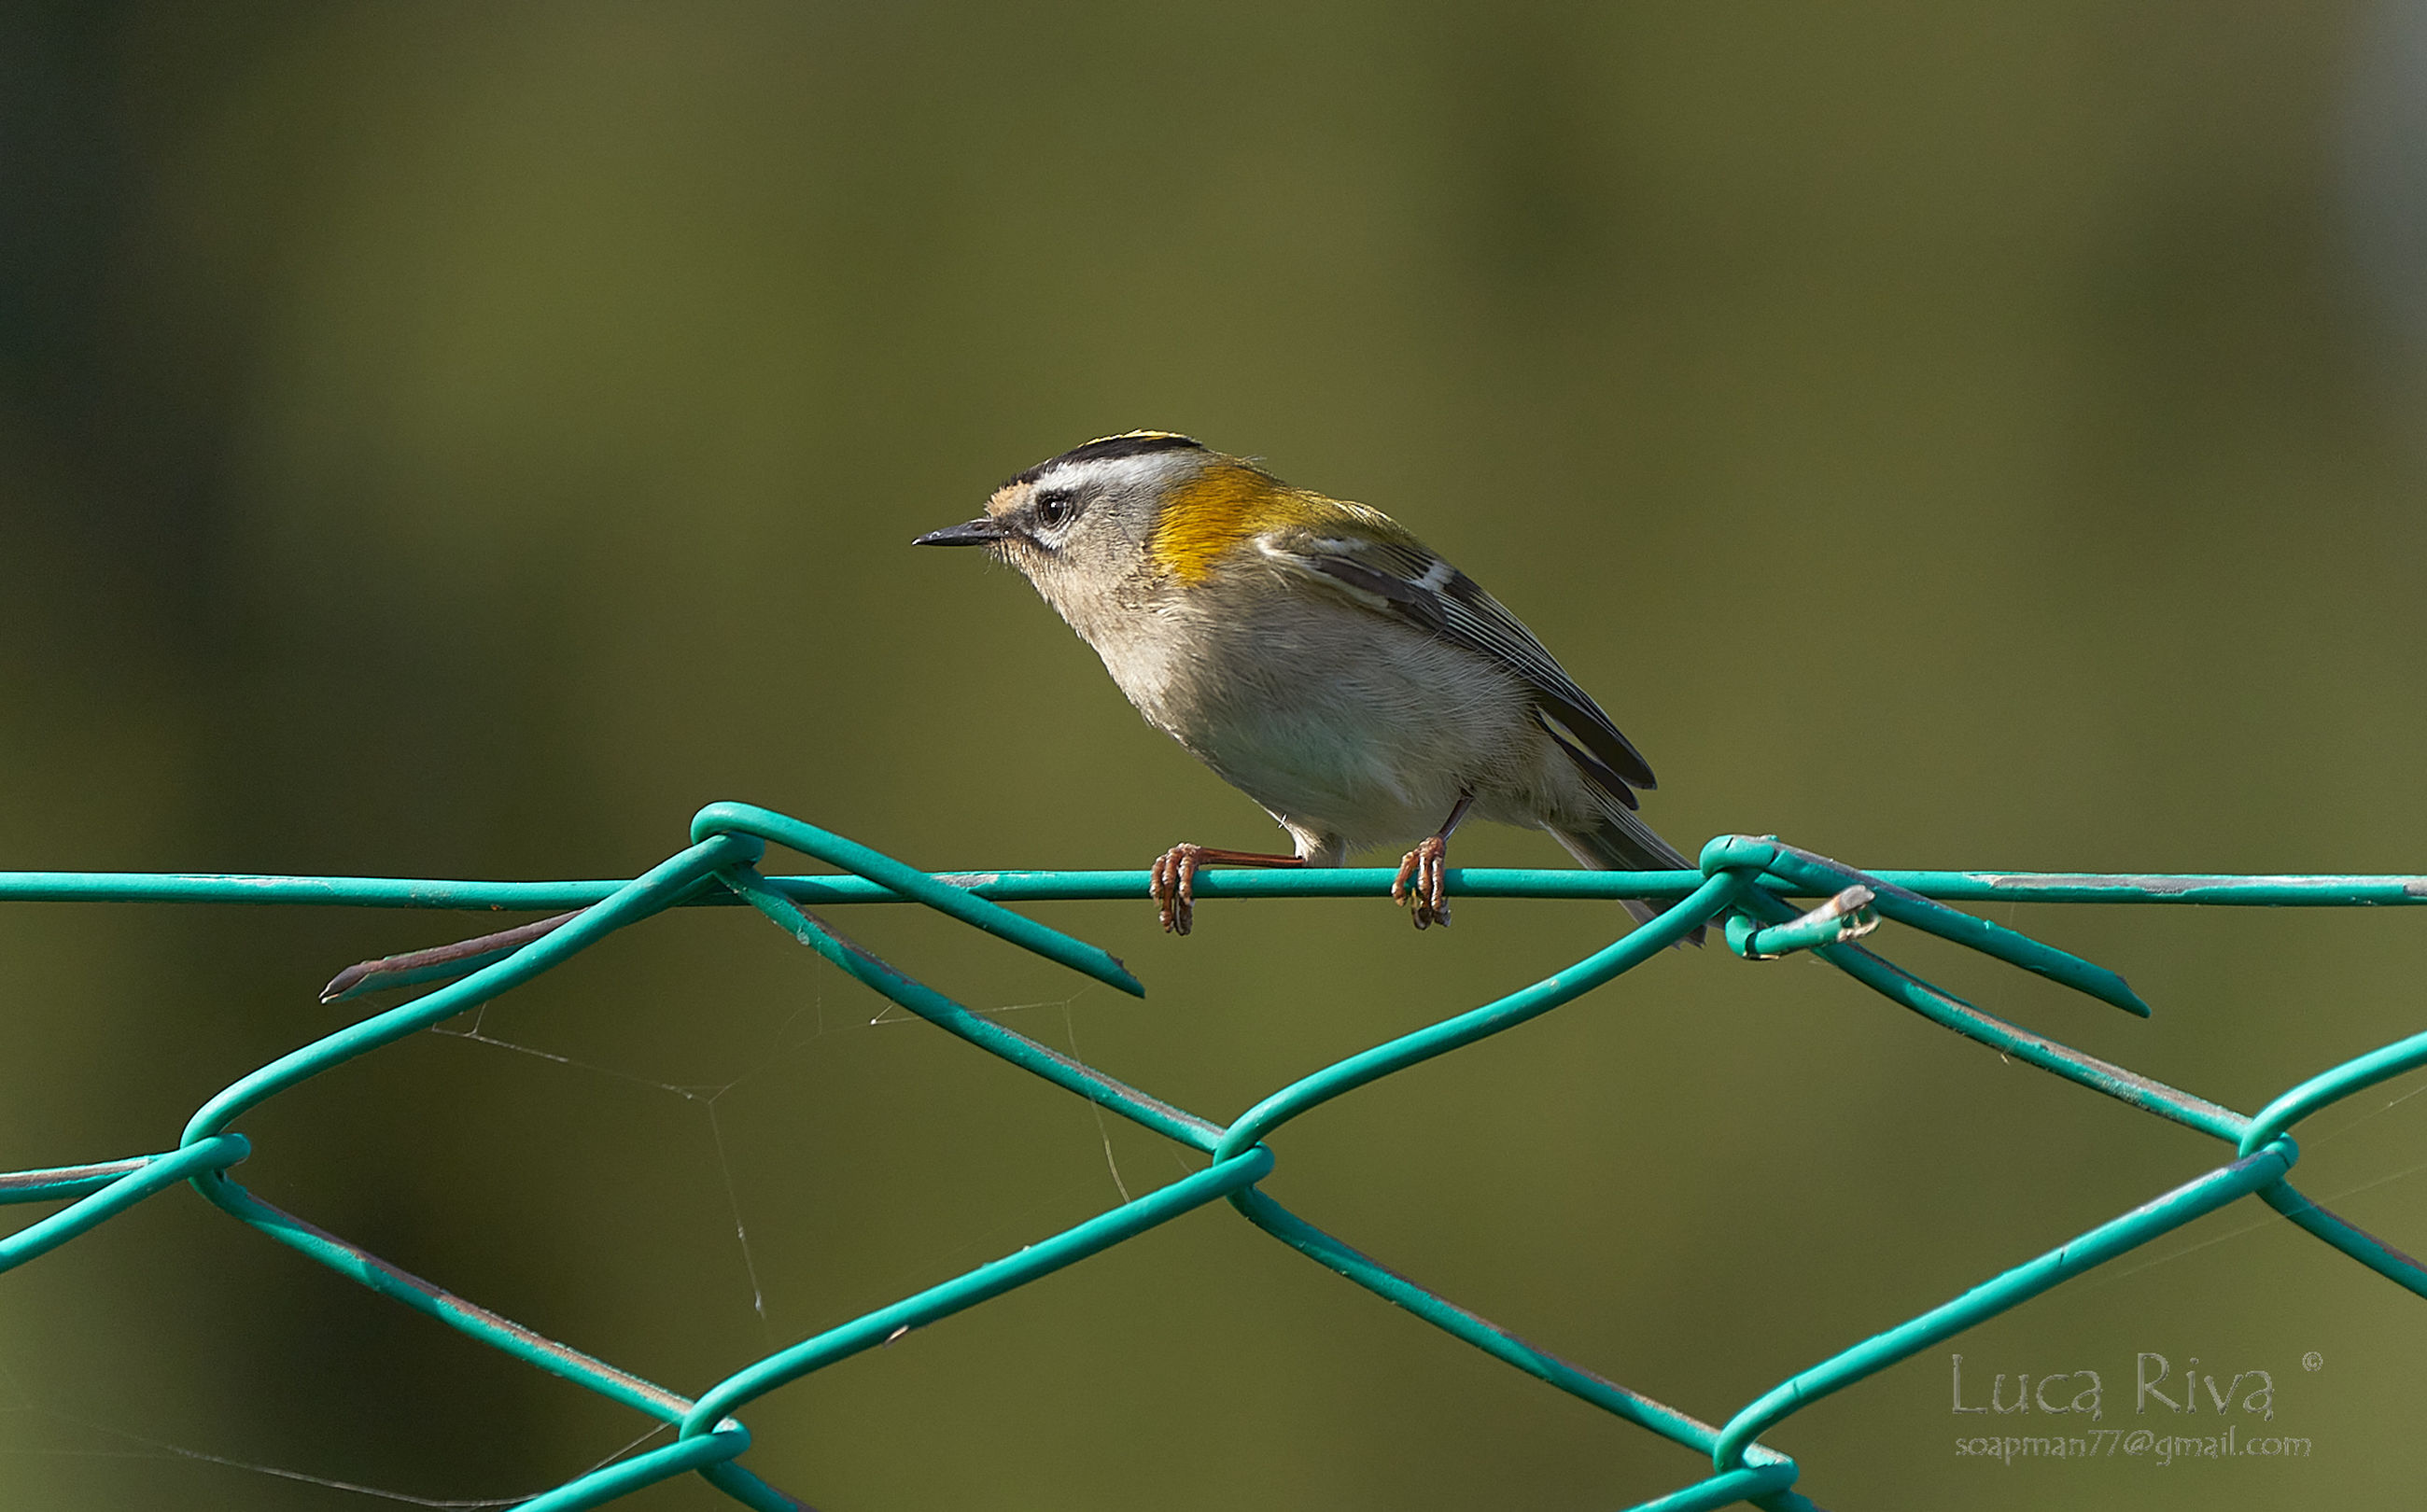 animal themes, bird, animal, animal wildlife, fence, one animal, wildlife, perching, beak, focus on foreground, branch, wire, nature, songbird, no people, chainlink fence, close-up, day, metal, outdoors, full length, protection, barbed wire, security